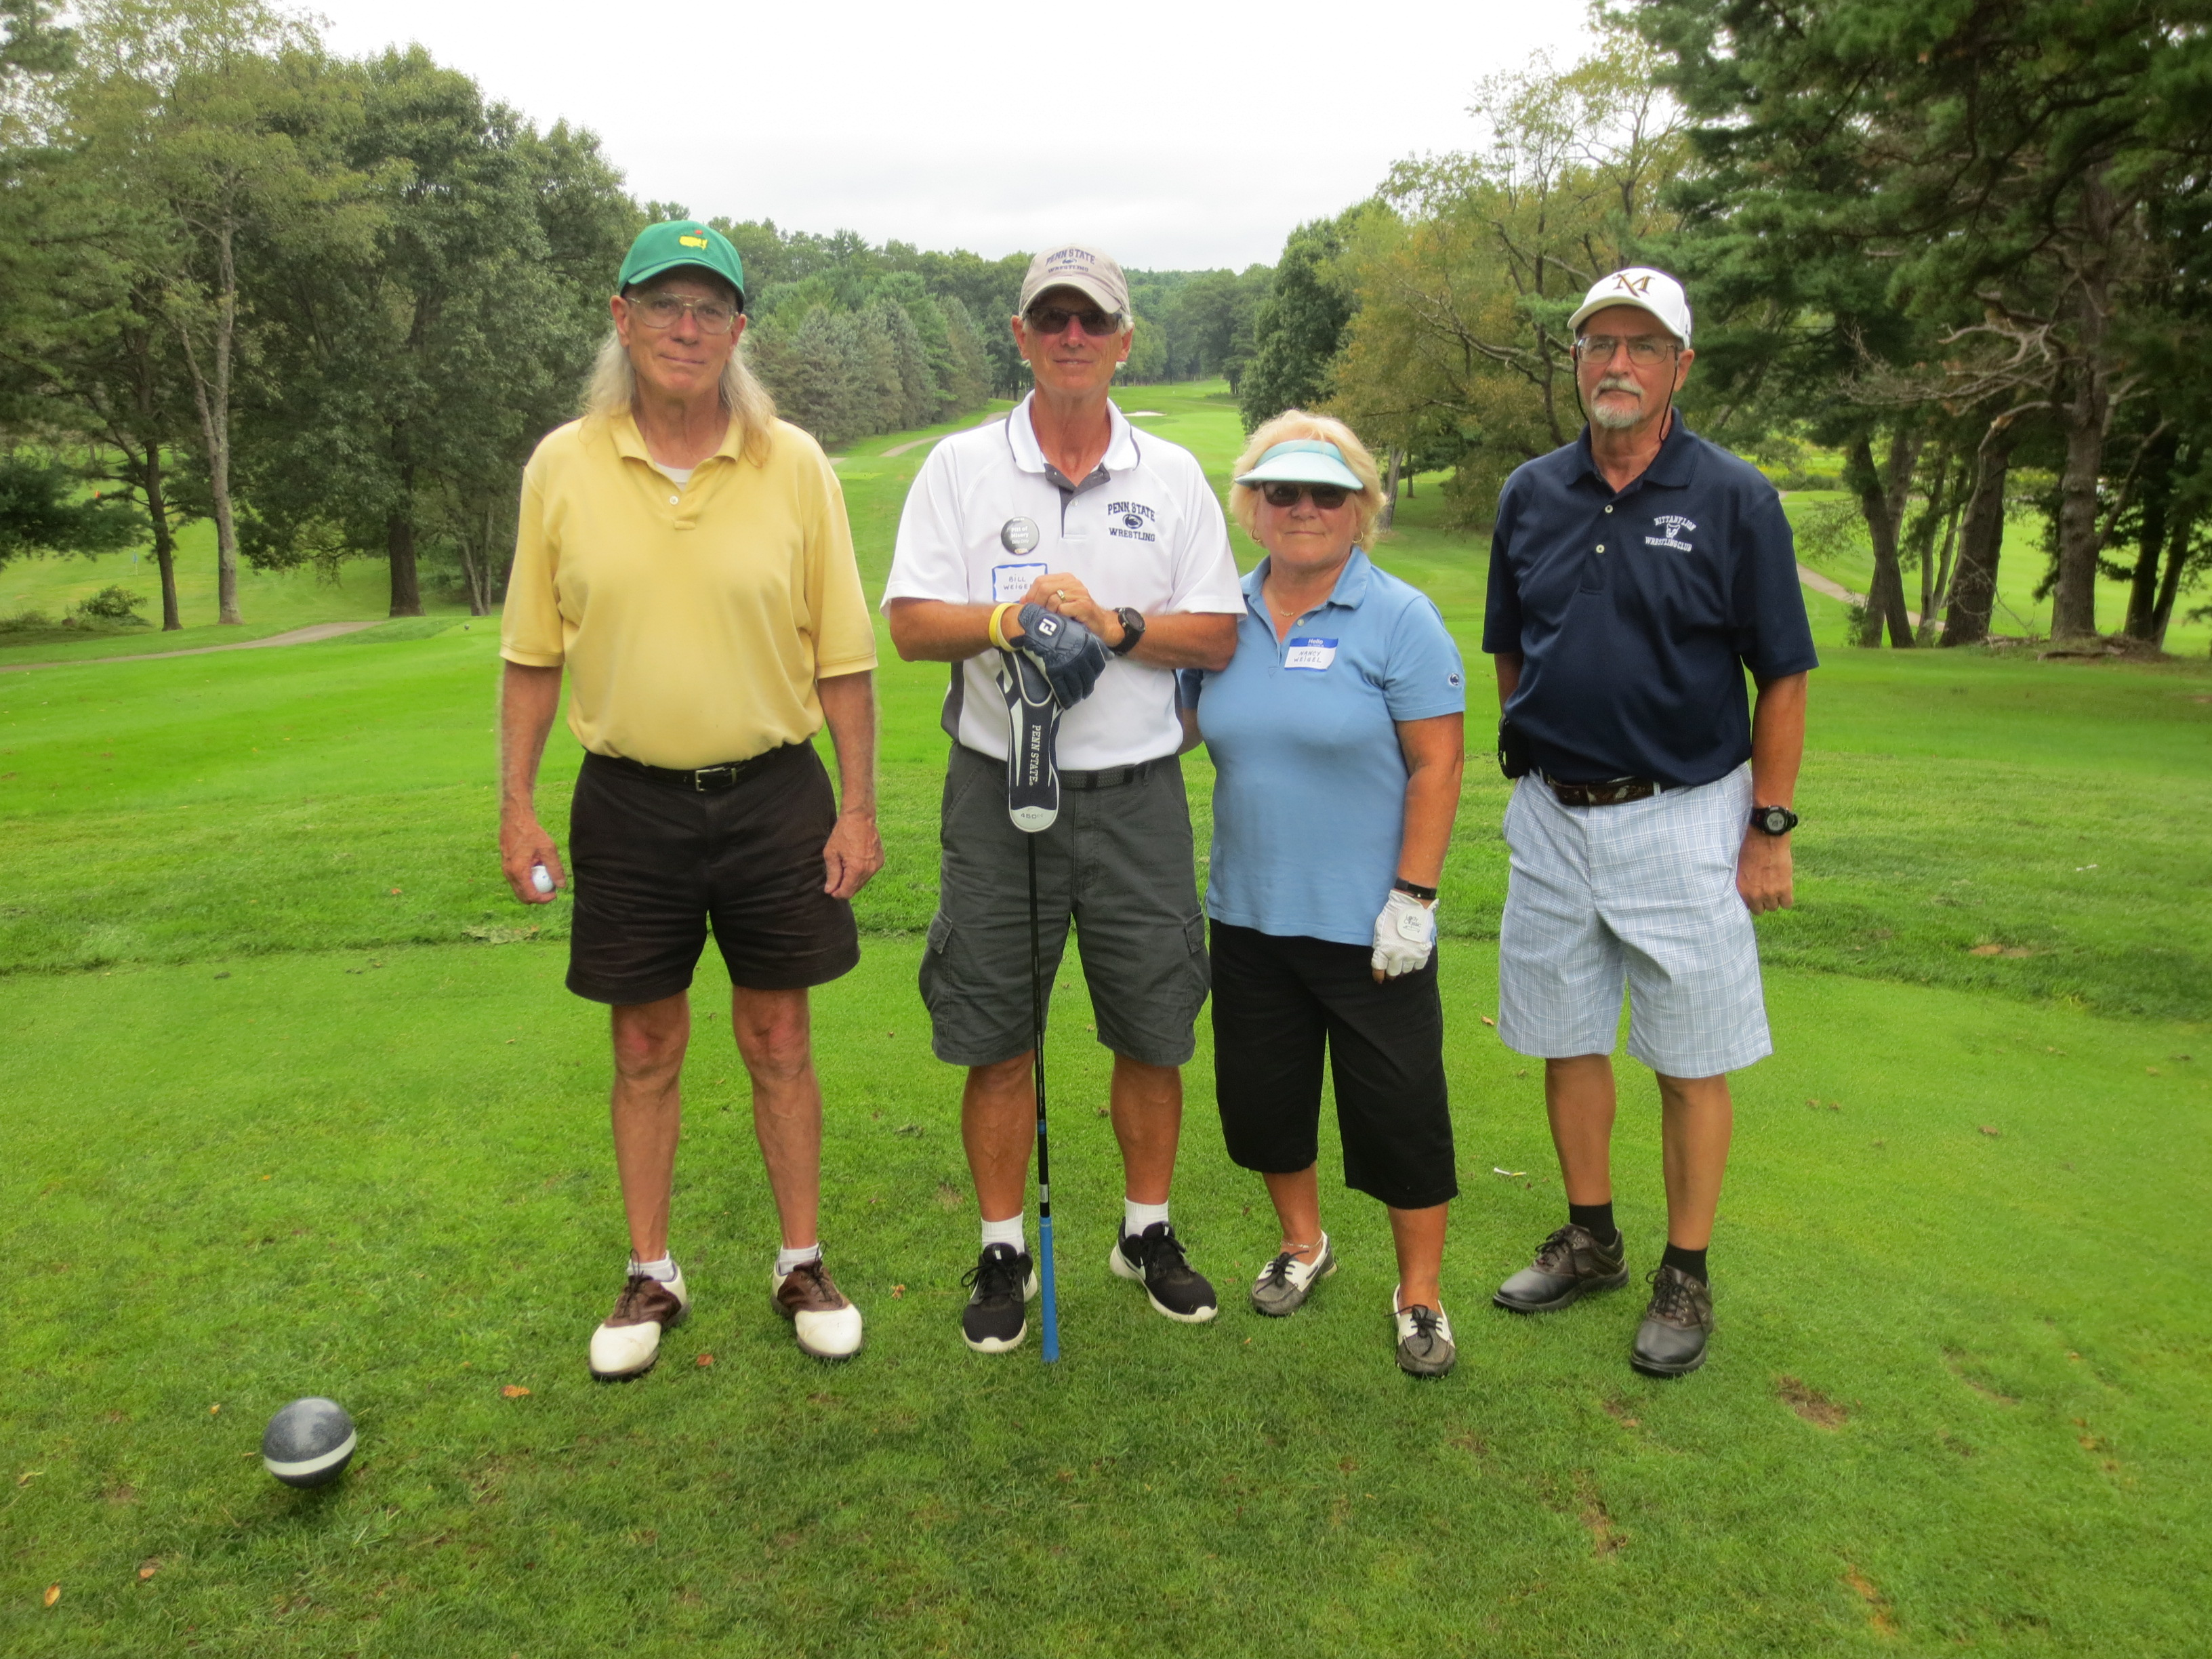 Rod Dietz, Bill Weigel, Nancy Weigel, Dave Weigel